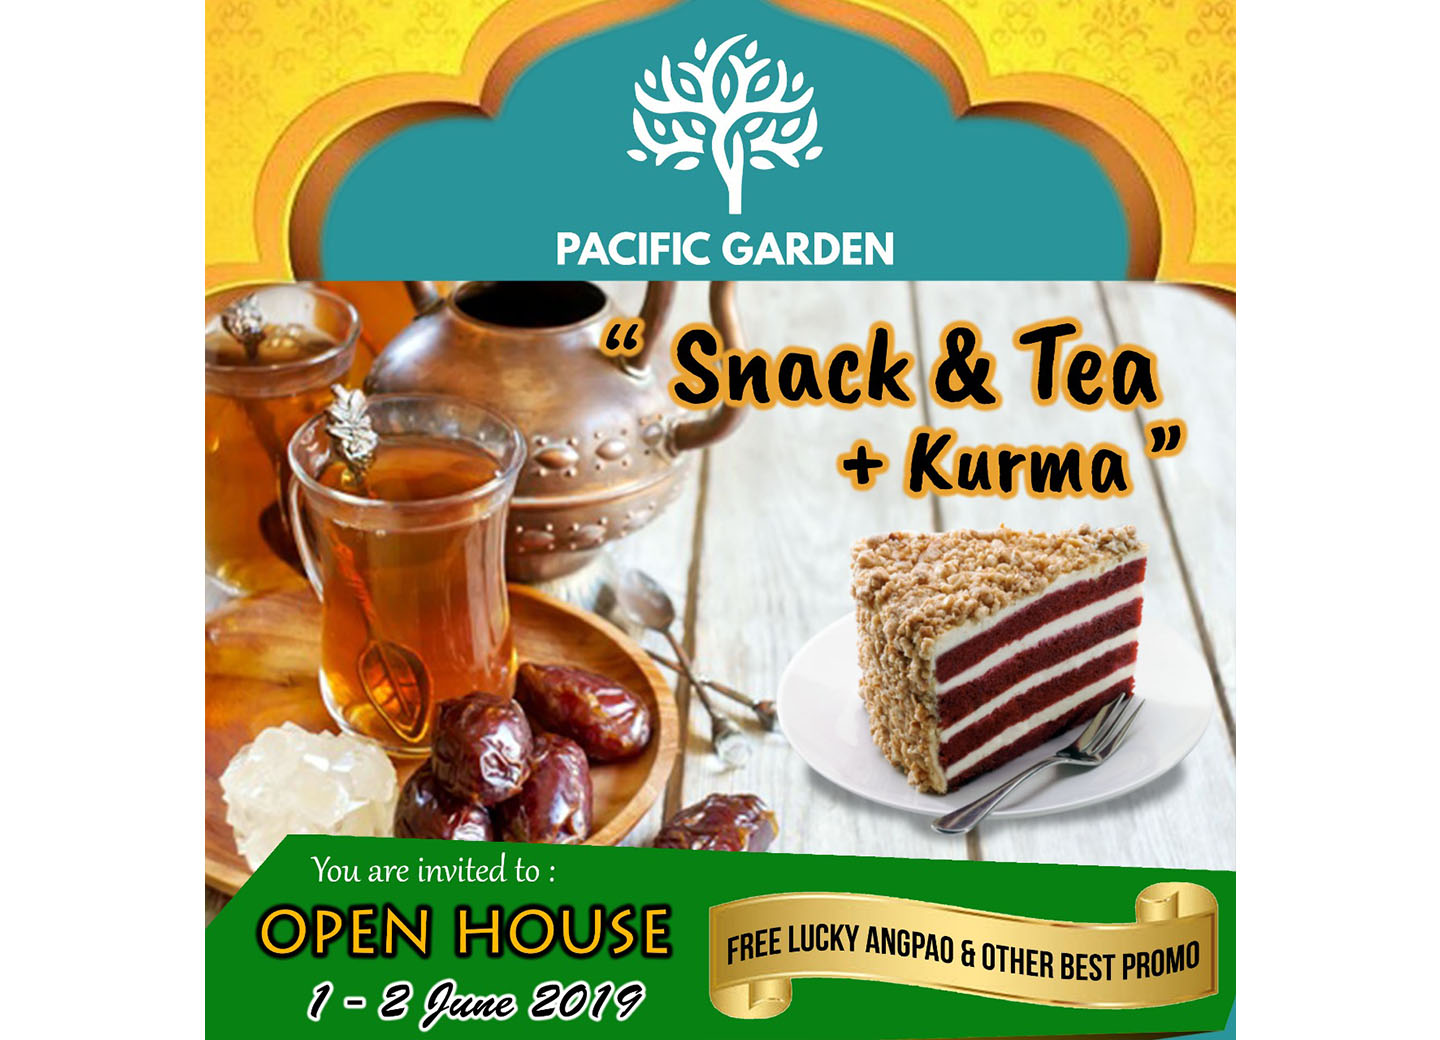 Pacific Garden Open House Snack and Tea Party + Kurma 1-2 Juni 2020